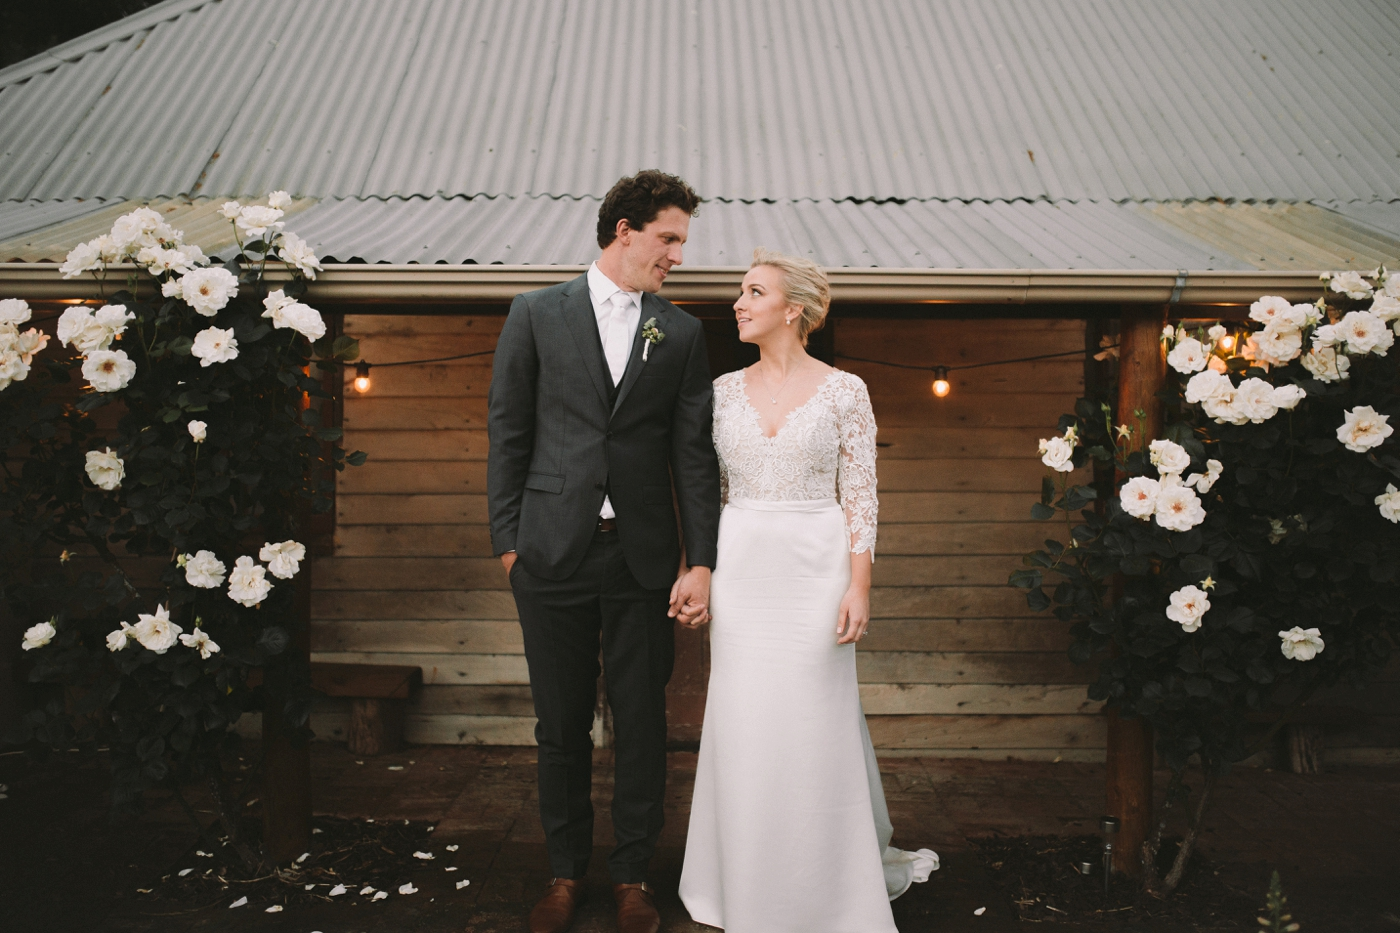 Penny and Michael - Adelaide Hills Wedding Photographer - Natural wedding photography in Adelaide - Katherine Schultz_0087.jpg